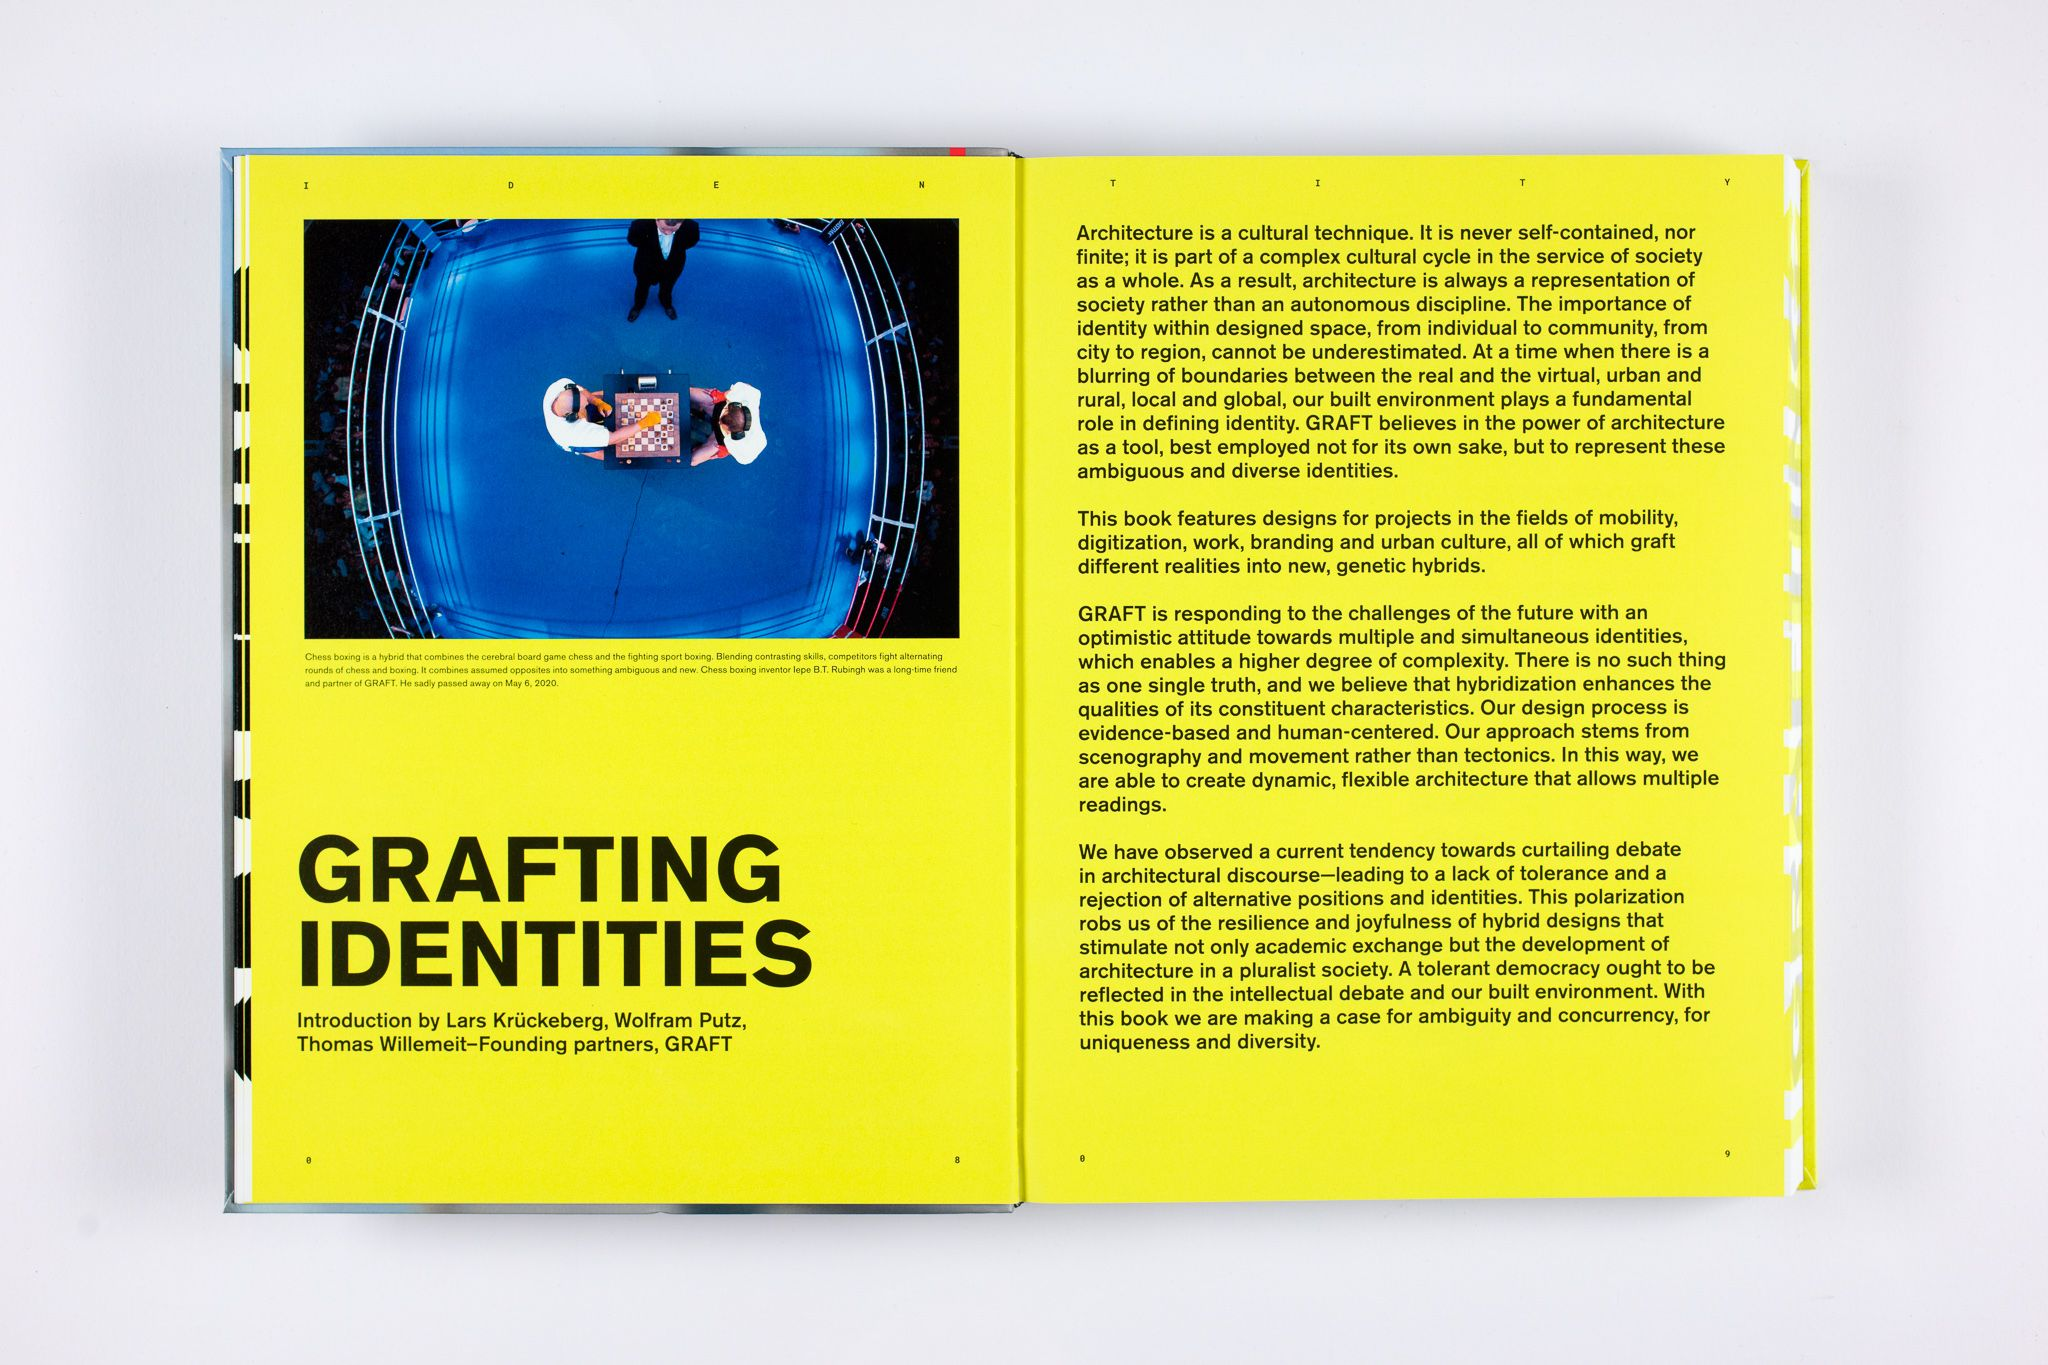 """IDENTITY. New Commercial, Cultural and Mobility Architecture AuthorGRAFT Project typePublication LanguageEnglish PublisherBirkhäuser  Paperback360 pages PublishedOctober 12, 2020  ISBN-103035619166 ISBN-13978-3035619164   The international and multidisciplinary practice GRAFT conceives of itself as a label for architecture, urban design, product design, and music. GRAFT calls itself a """"hybrid office"""" and produces dynamic architectural designs for standard commissions; however, the architects also initiate their own projects and system solutions for tasks with a social, ecological, or esthetic emphasis."""